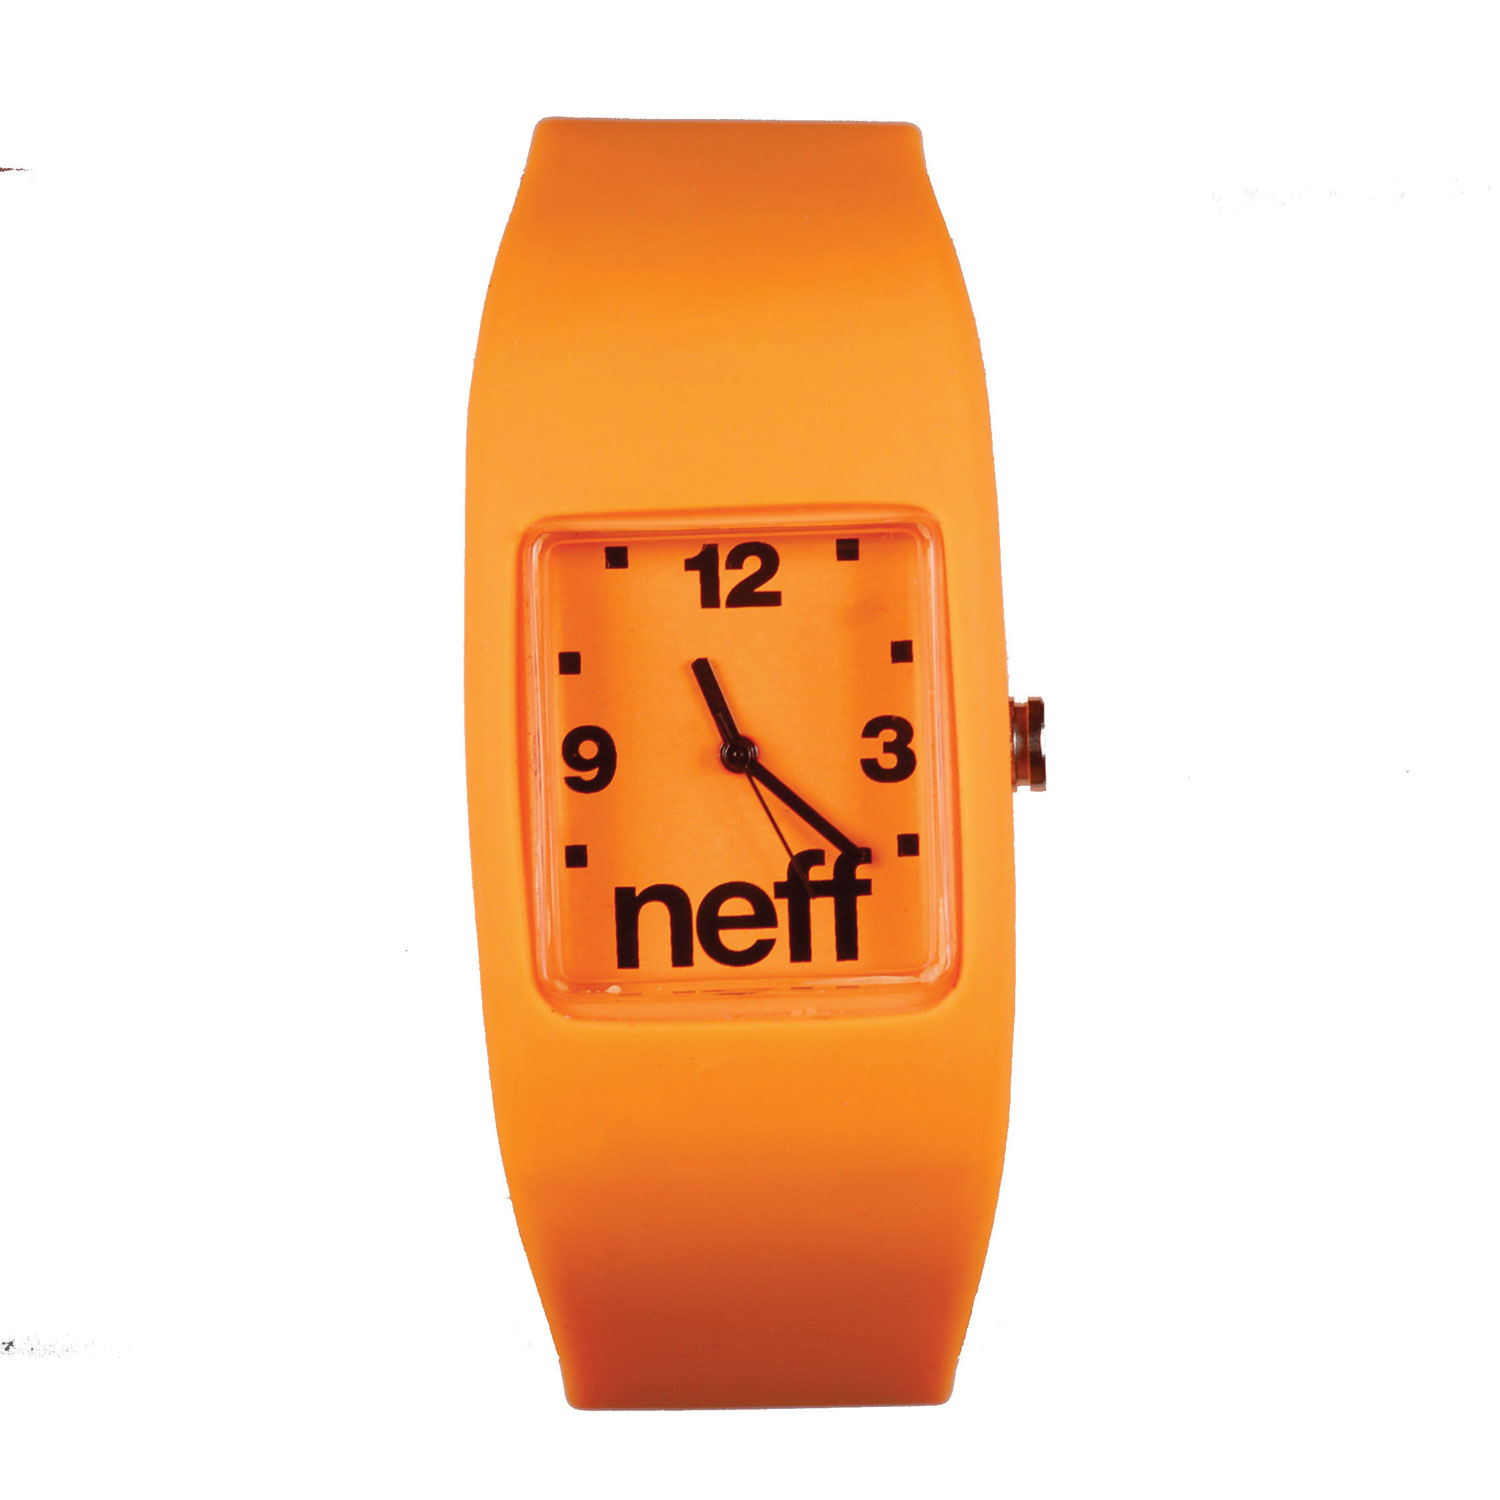 Skateboard The Neff Bandit watch stretches to fit your wrist so you don't have to worry about it coming undone while shredding the hills. It also has an interchangeable face! Feel free to mix and match the Neff Bandit wristband watch with other Bandit watches for a customized look. Key Features of the Neff Bandit Watch: 2cm x 2.5cm display. Interchangeable face. Case made from protective ABS material. Silicon stretch band. Neff logo on display, crown and band. Stainless steel back. 5 ATM water resistant. Imported. - $17.95